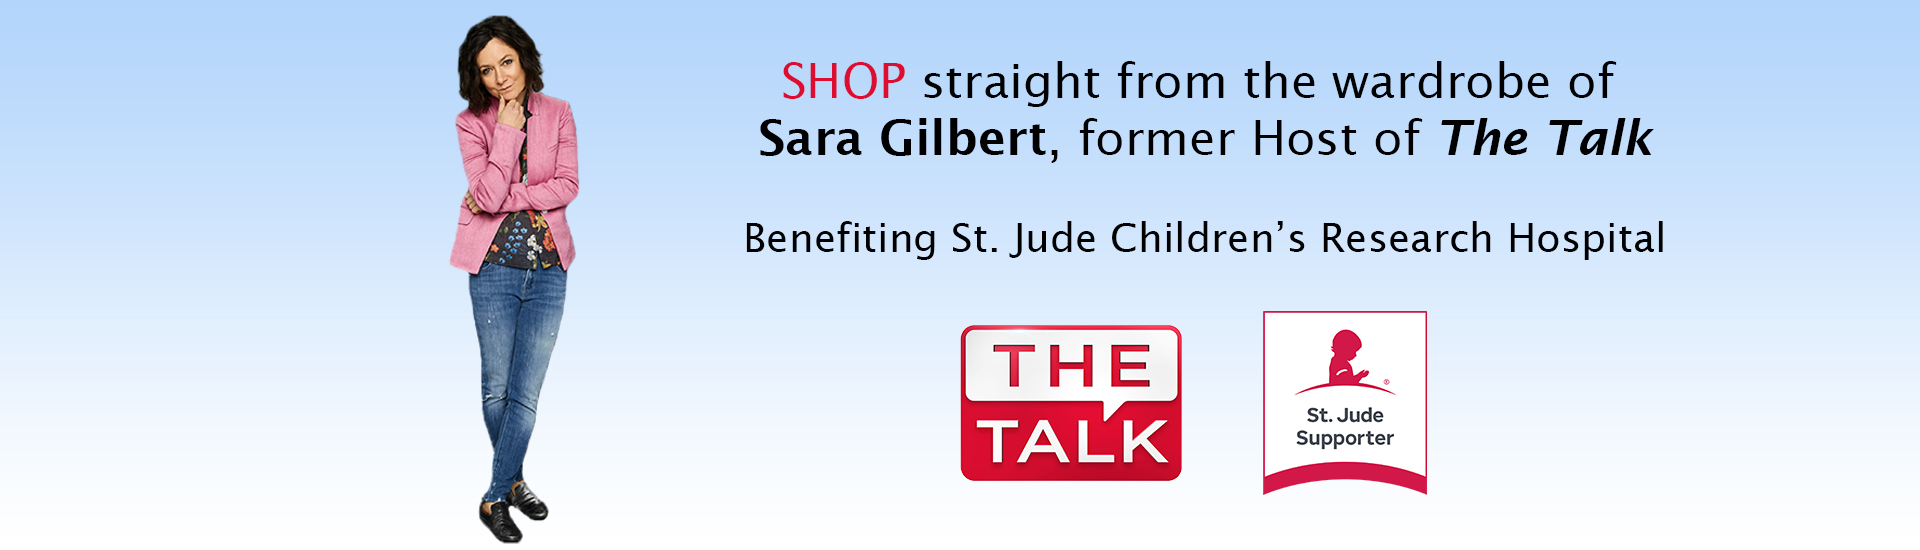 Sara Gilbert The Talk Collection for St. Jude